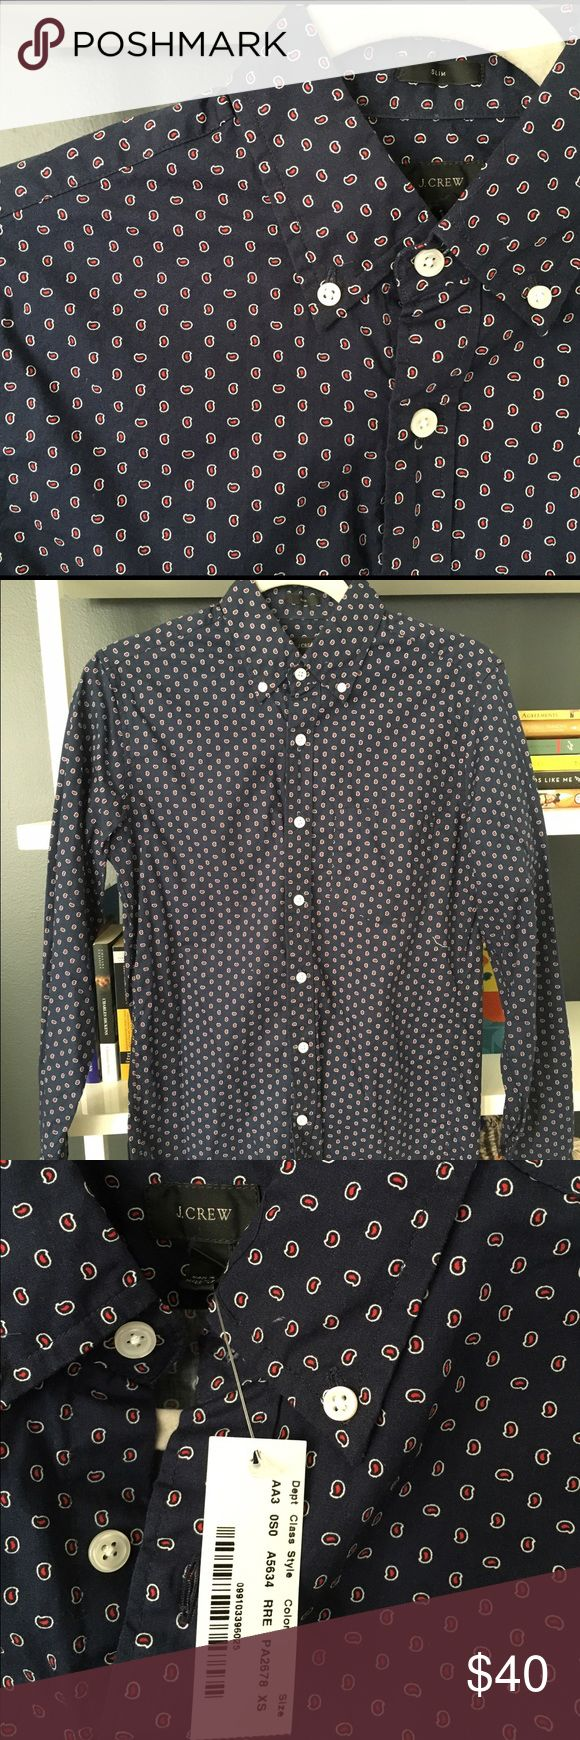 J Crew Men's XS Button Down J.Crew Men's Slim fit button down. It is a slim fit XS long sleeve covered in a small white and red paisley print. Never been worn! J. Crew Shirts Casual Button Down Shirts